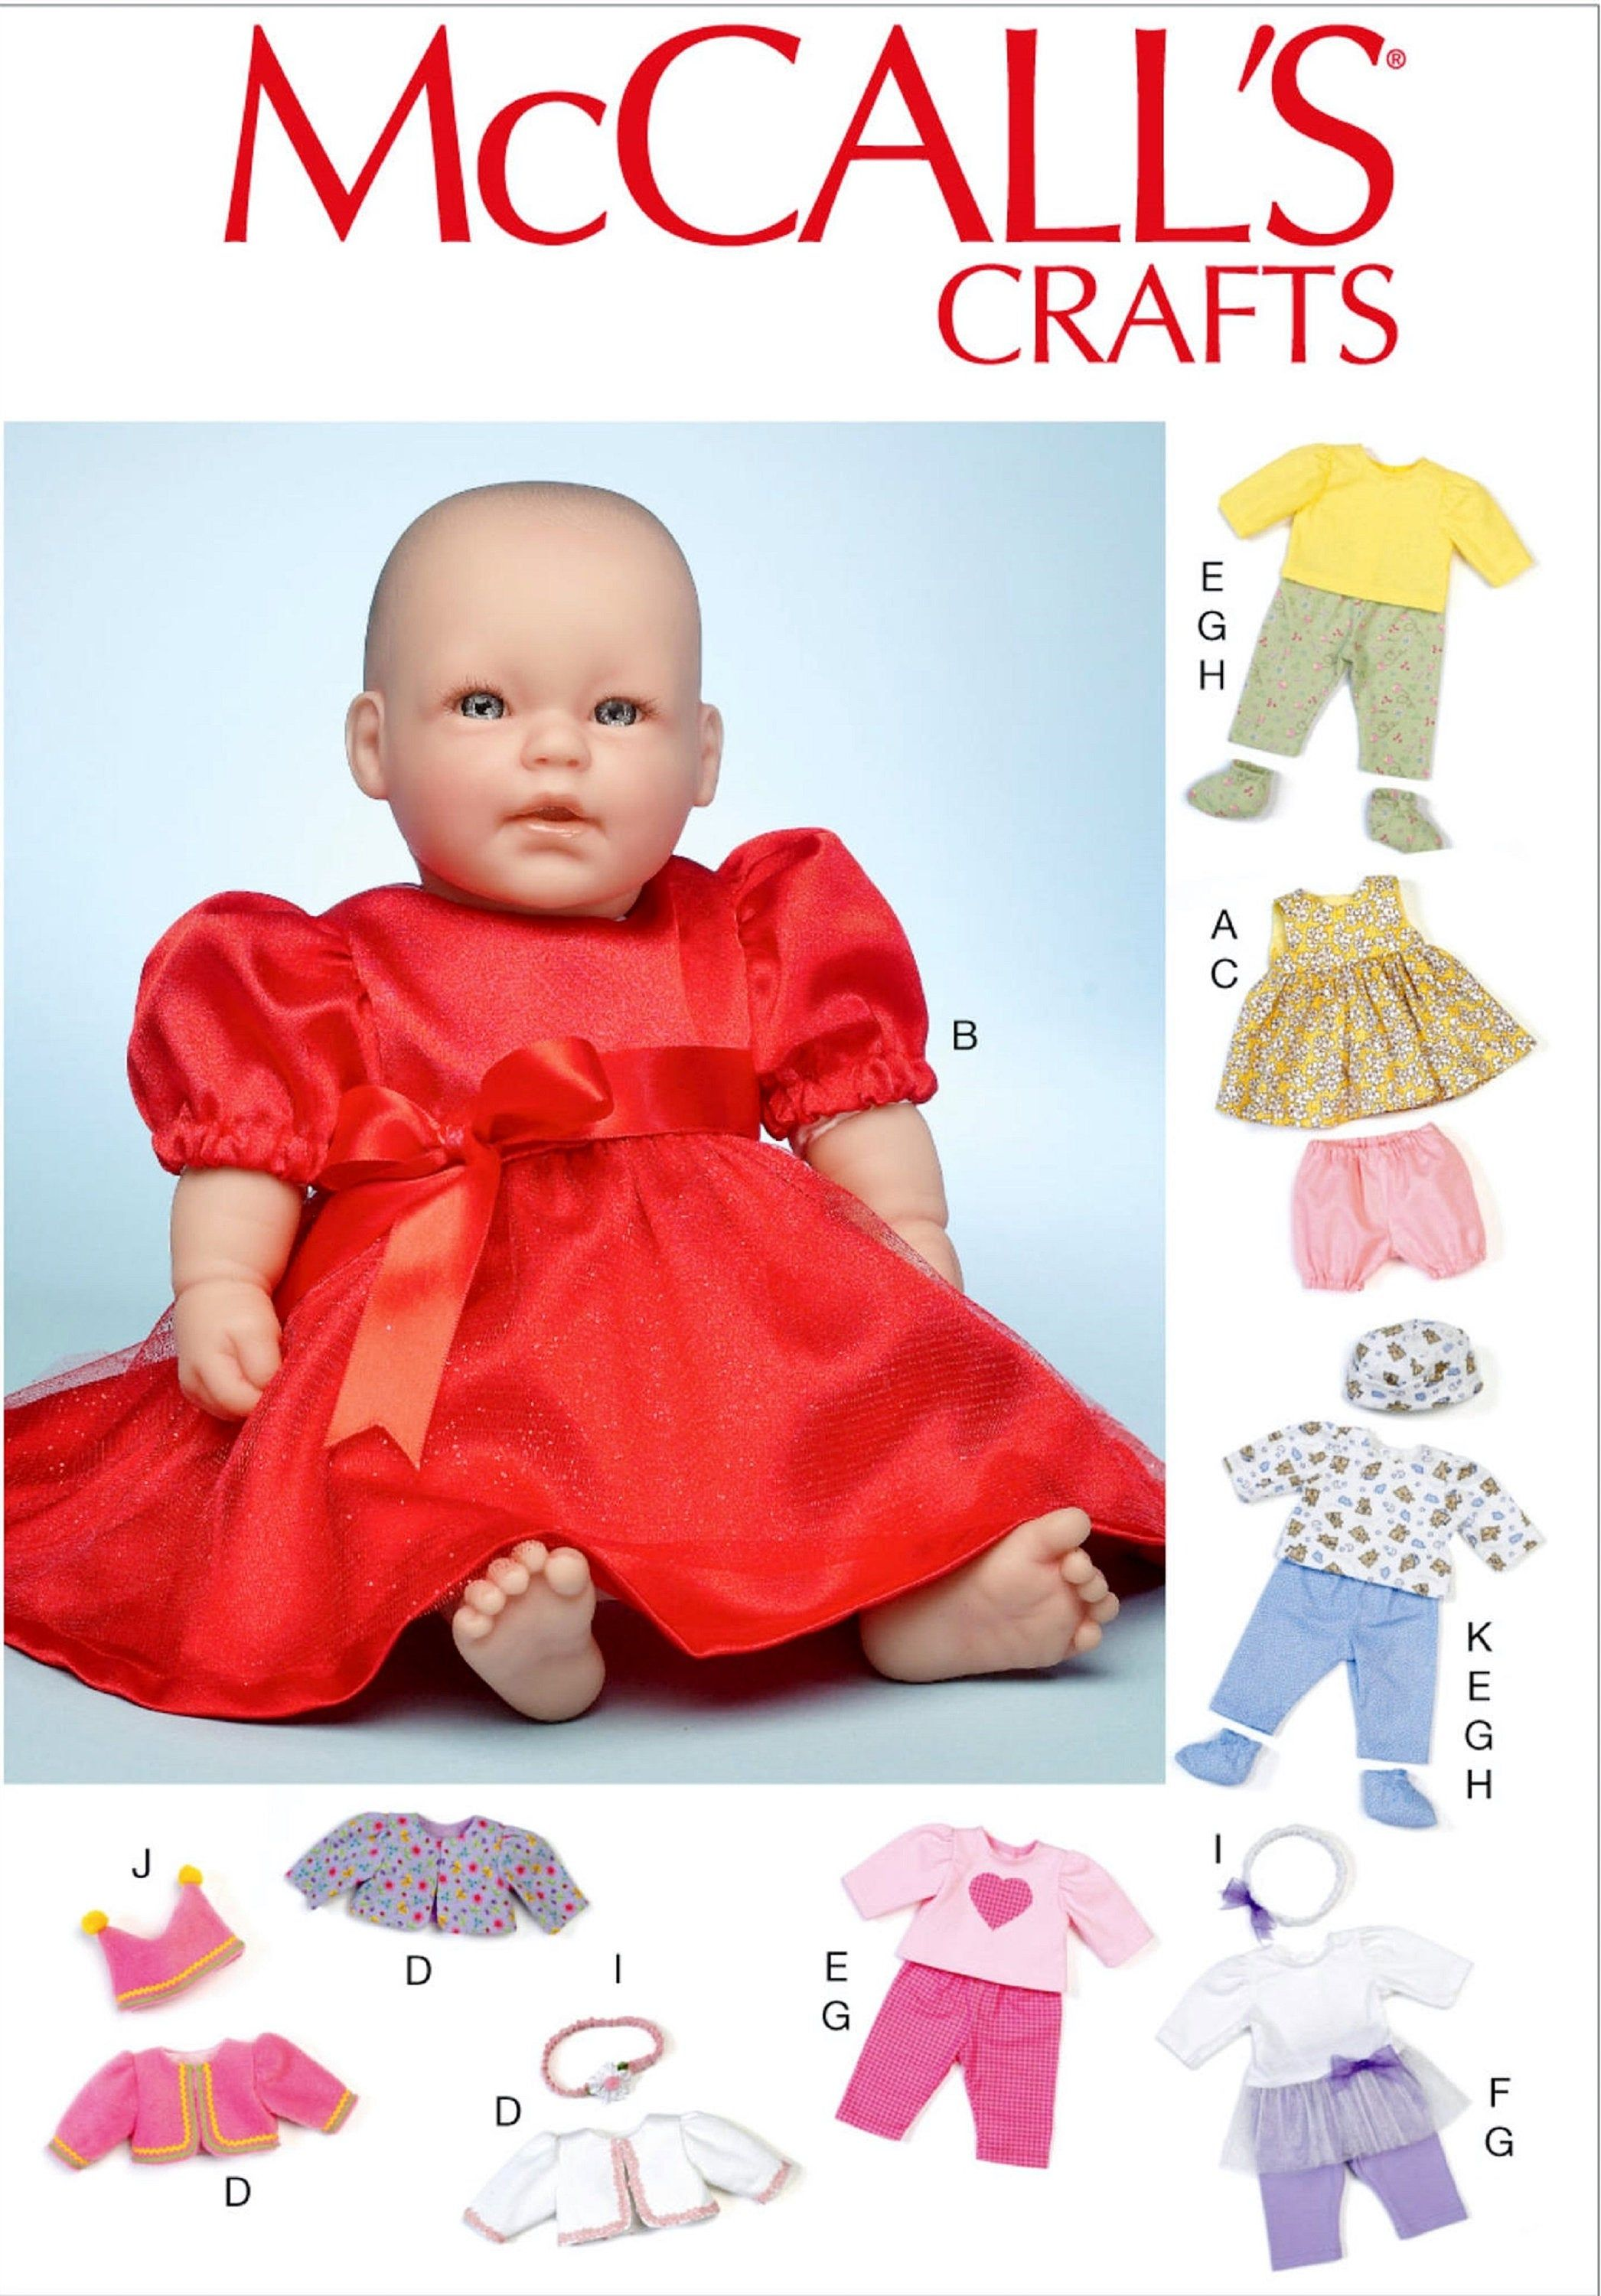 Sewing Pattern Baby Doll Clothes Pattern Doll Baby Clothes Pattern 11 12 And 15 16 Inc In 2020 Baby Doll Clothes Patterns Baby Clothes Patterns Doll Clothes Patterns